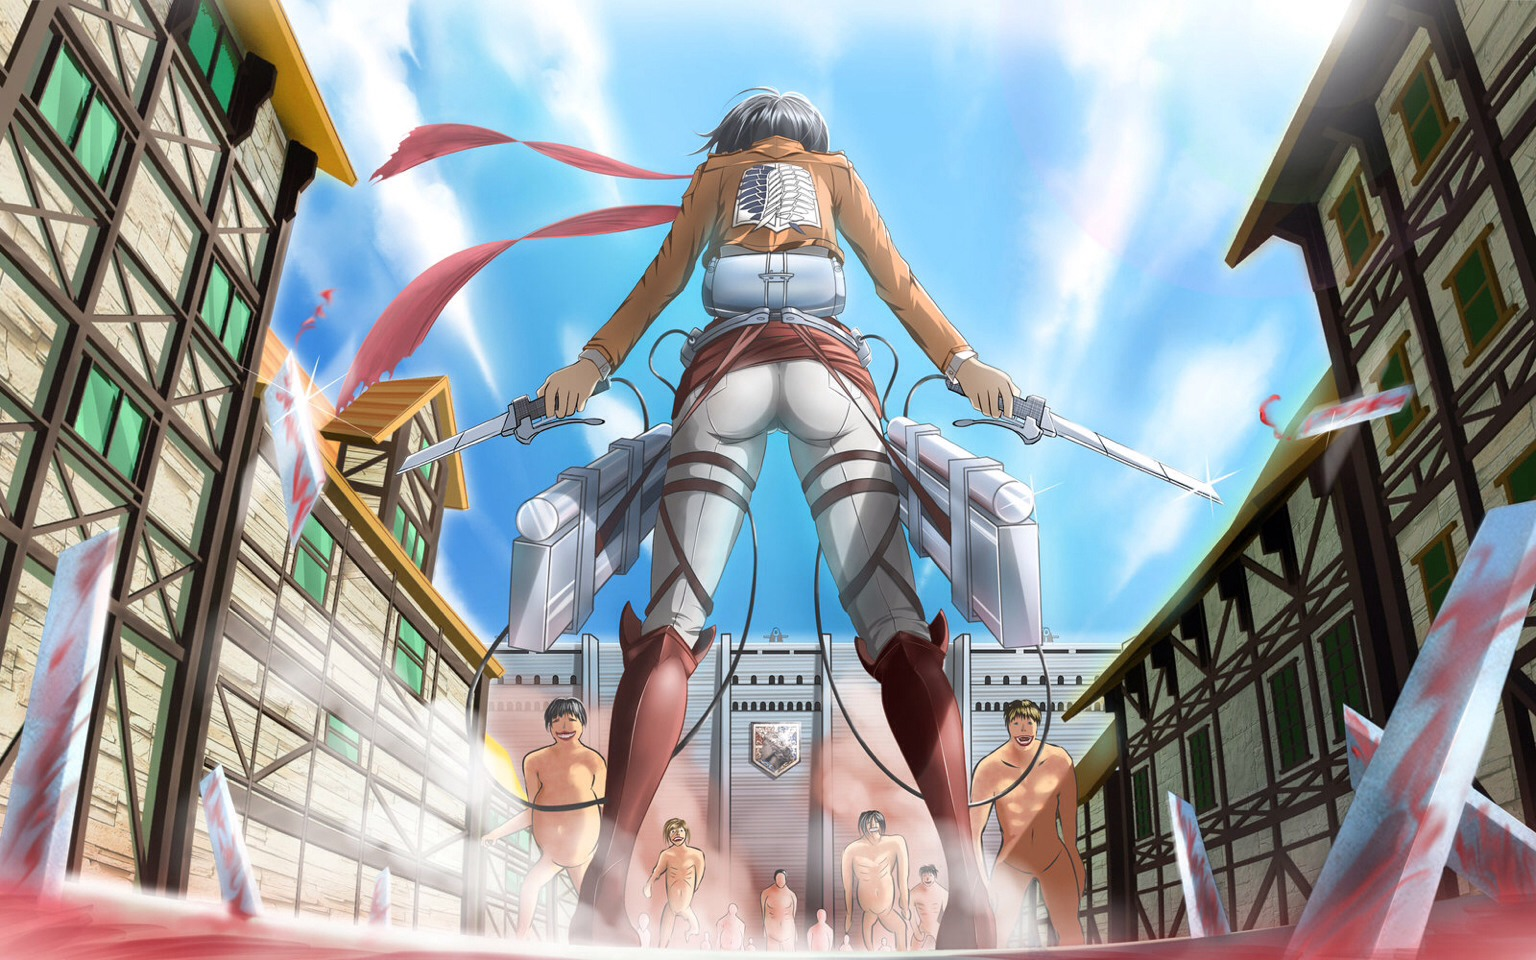 Attack on titans: a civilization lives in peace until a sudden attack from large and dangerous titans. Graphic and great, yet another anime were awaiting on the next season.